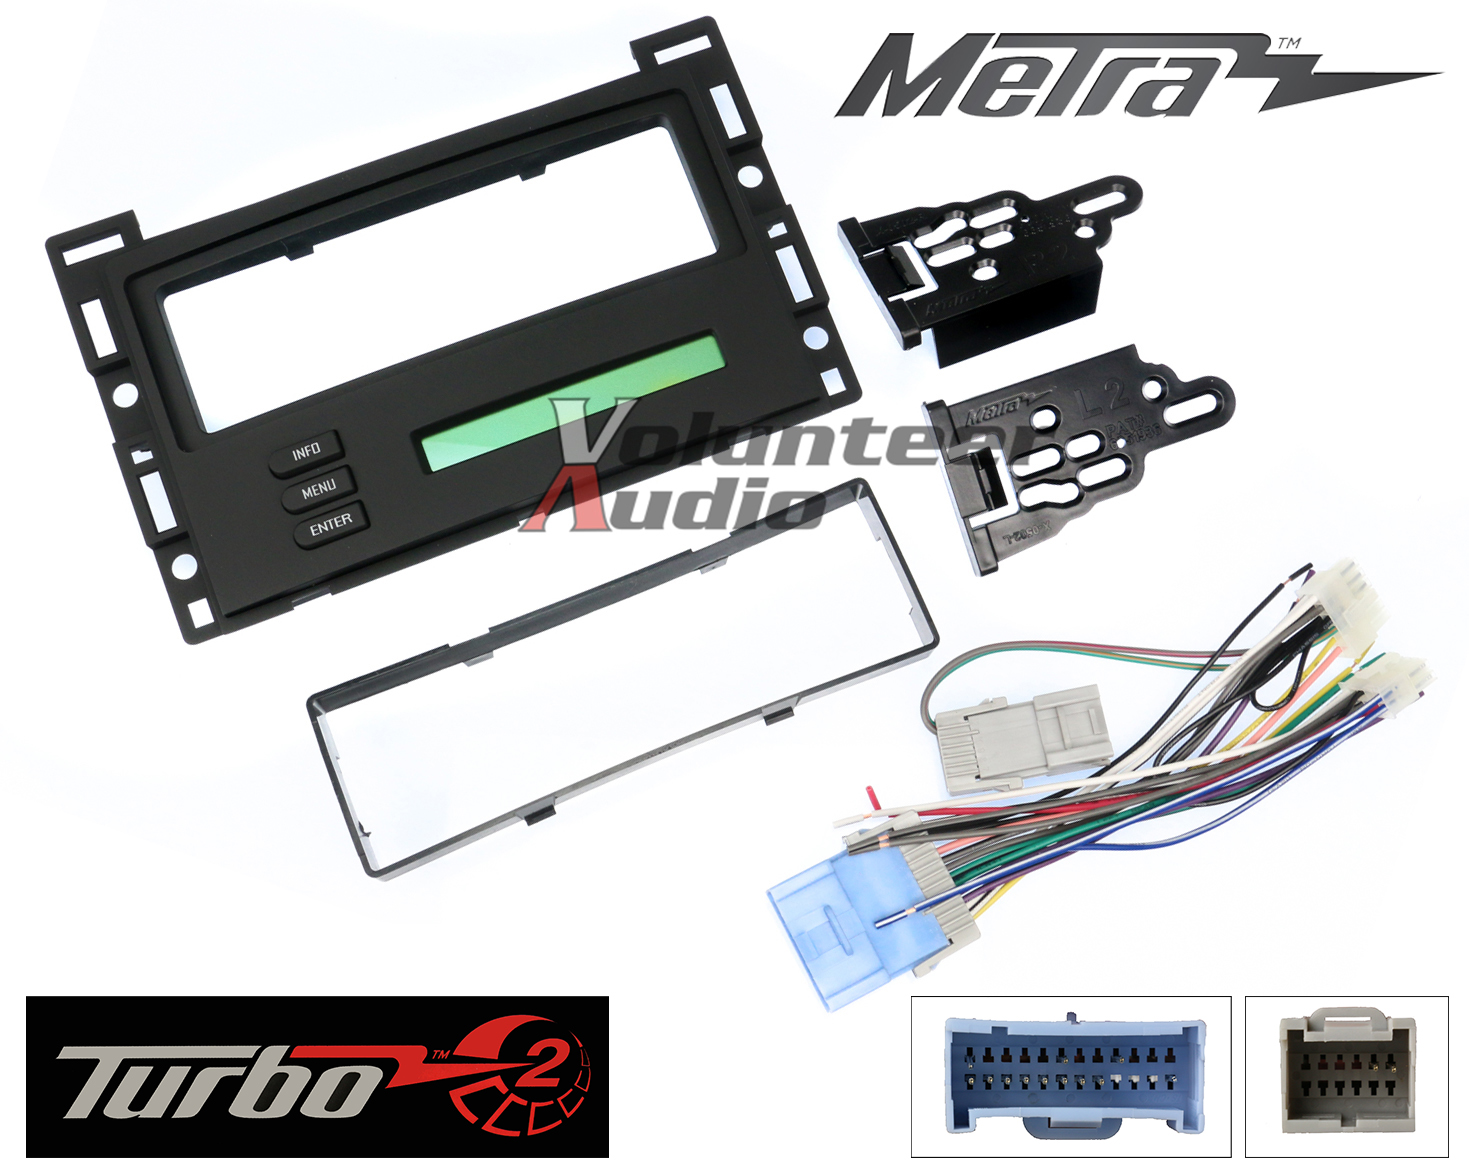 99 3303 marked1 metra 99 3303 single din stereo dash kit for chevy malibu cobalt metra 99-3303 wiring harness at edmiracle.co